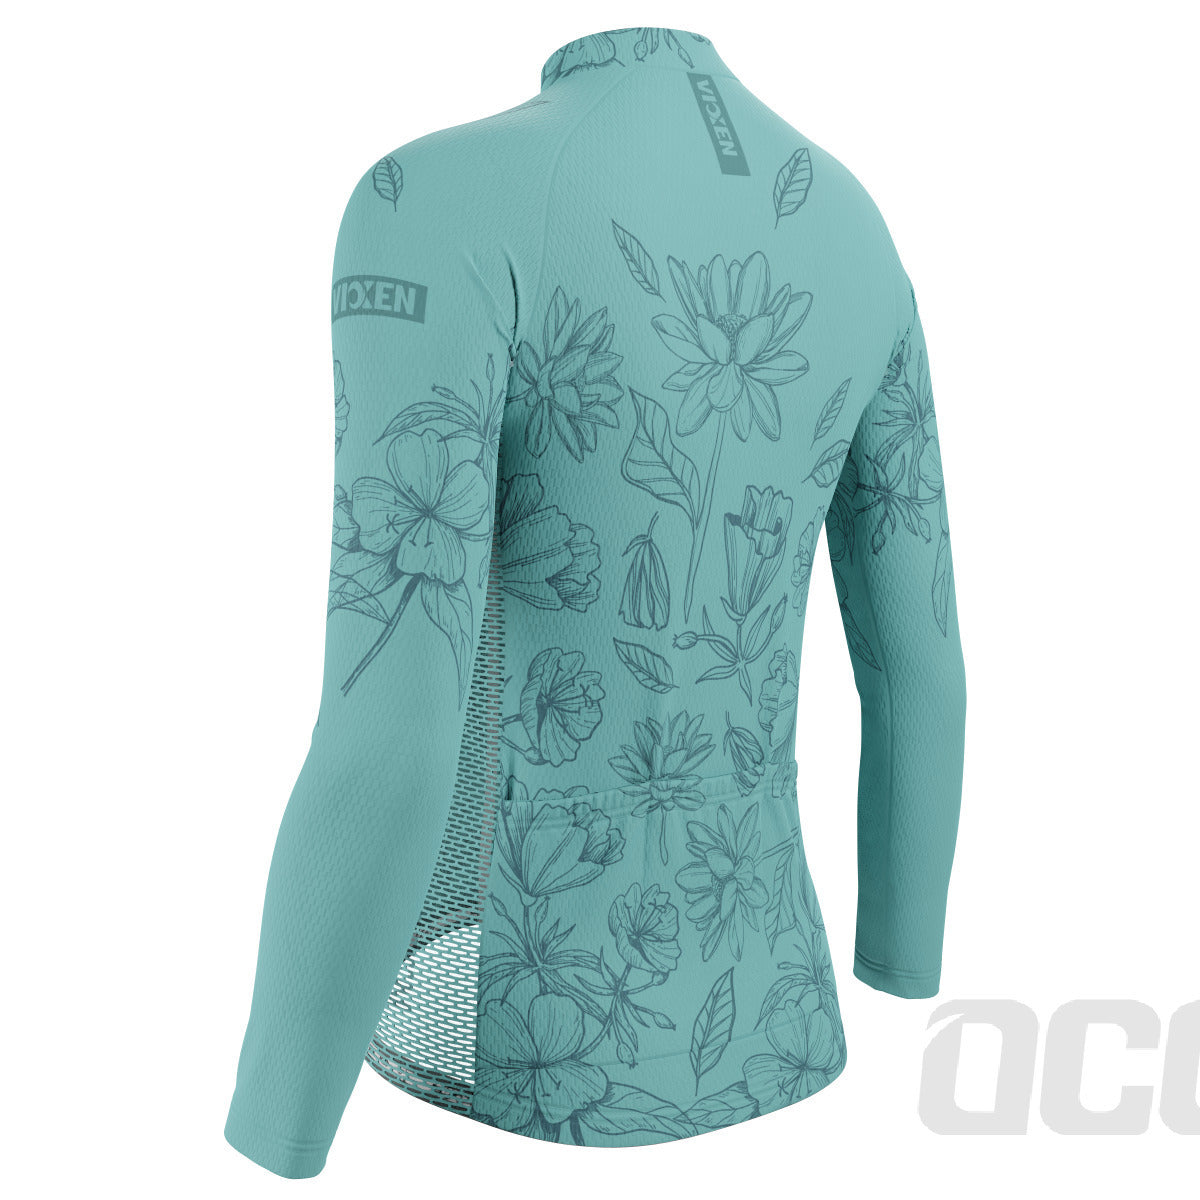 Women's Flower Power Long Sleeve Cycling Jersey